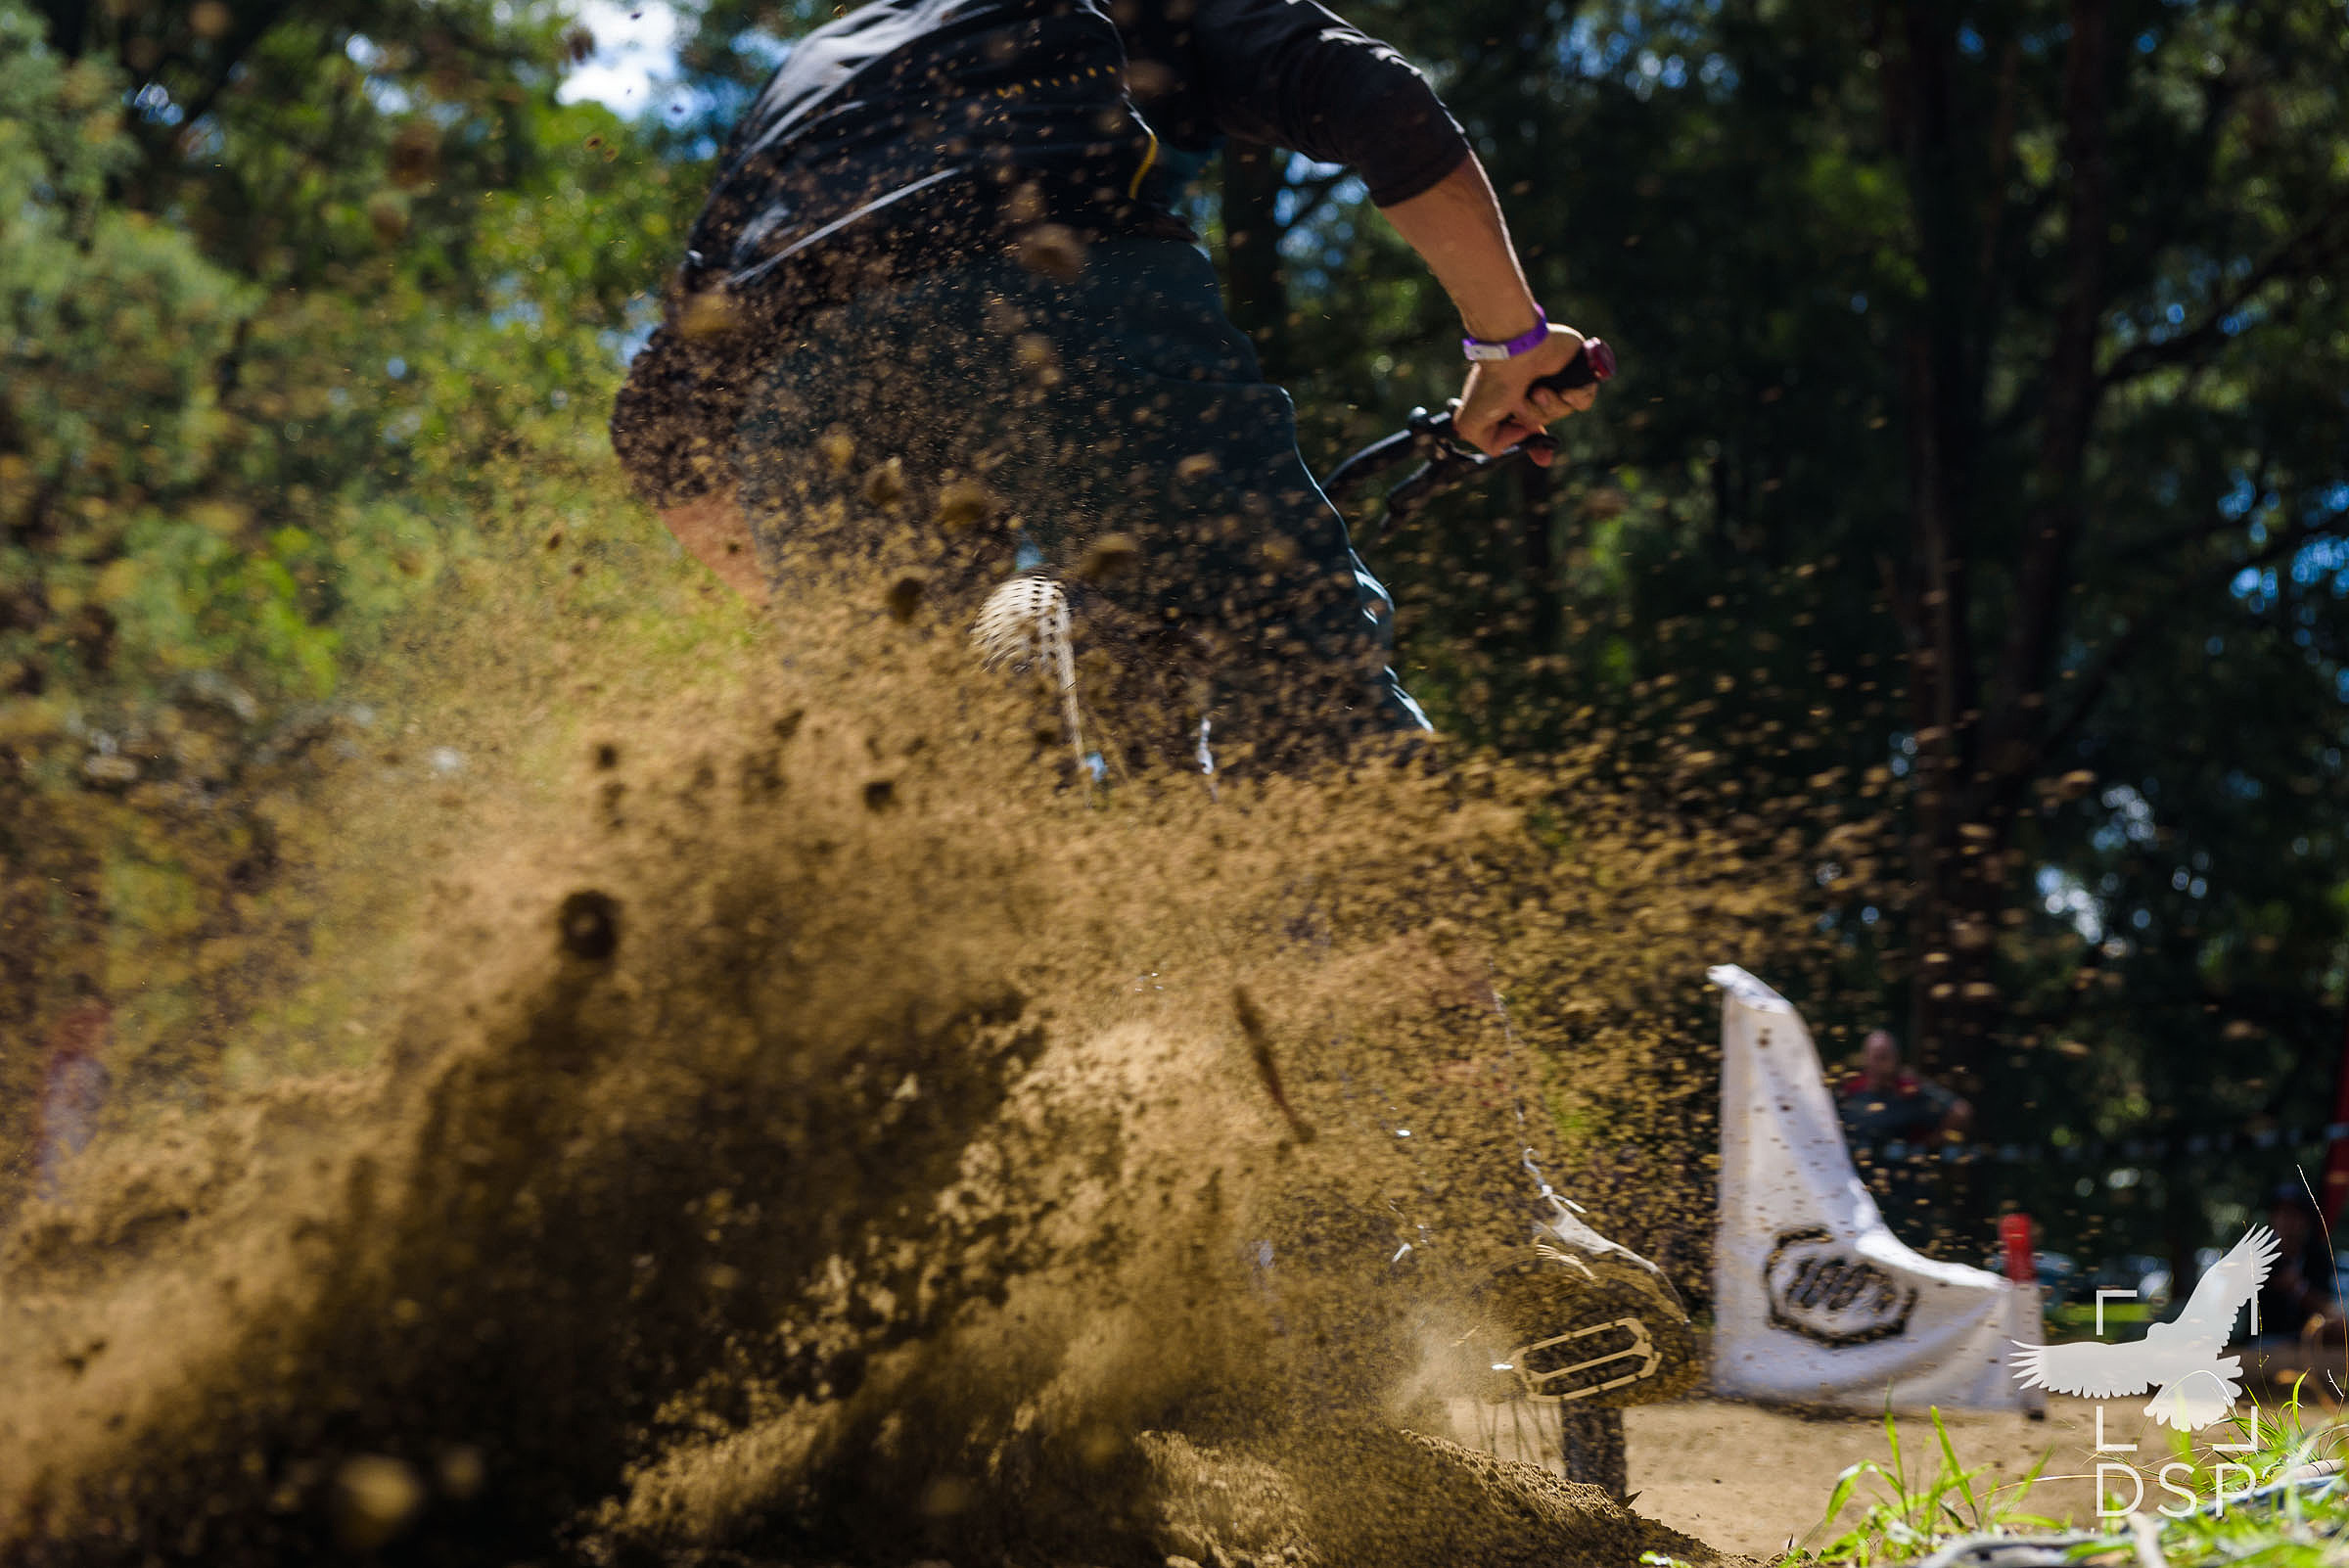 Riders pushed right to the limits of grip.